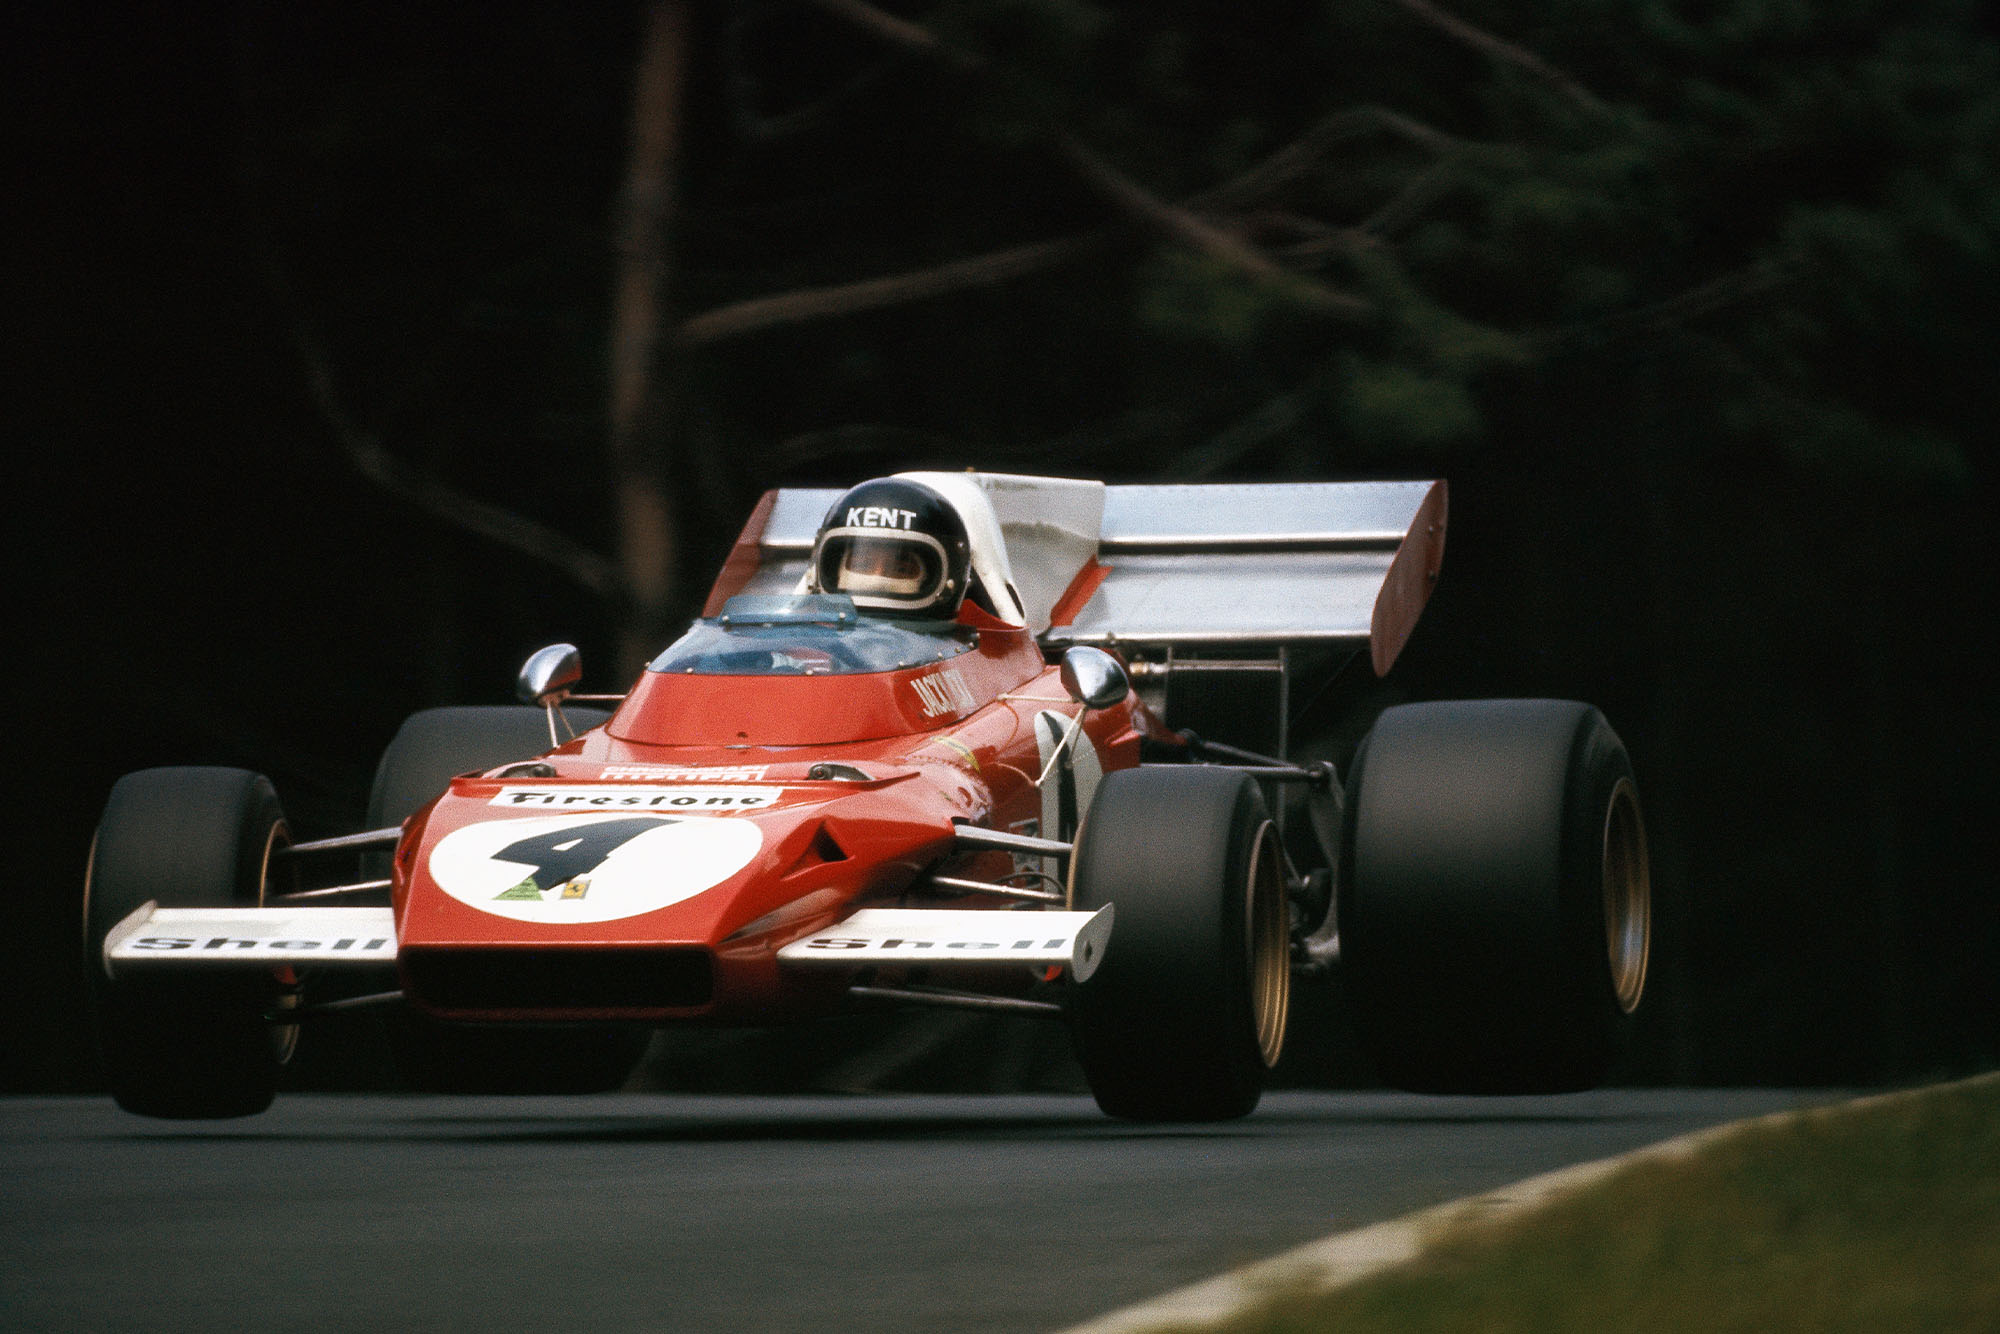 Jacky Ickx driving for Ferrari at the 1972 German Grand Prix.